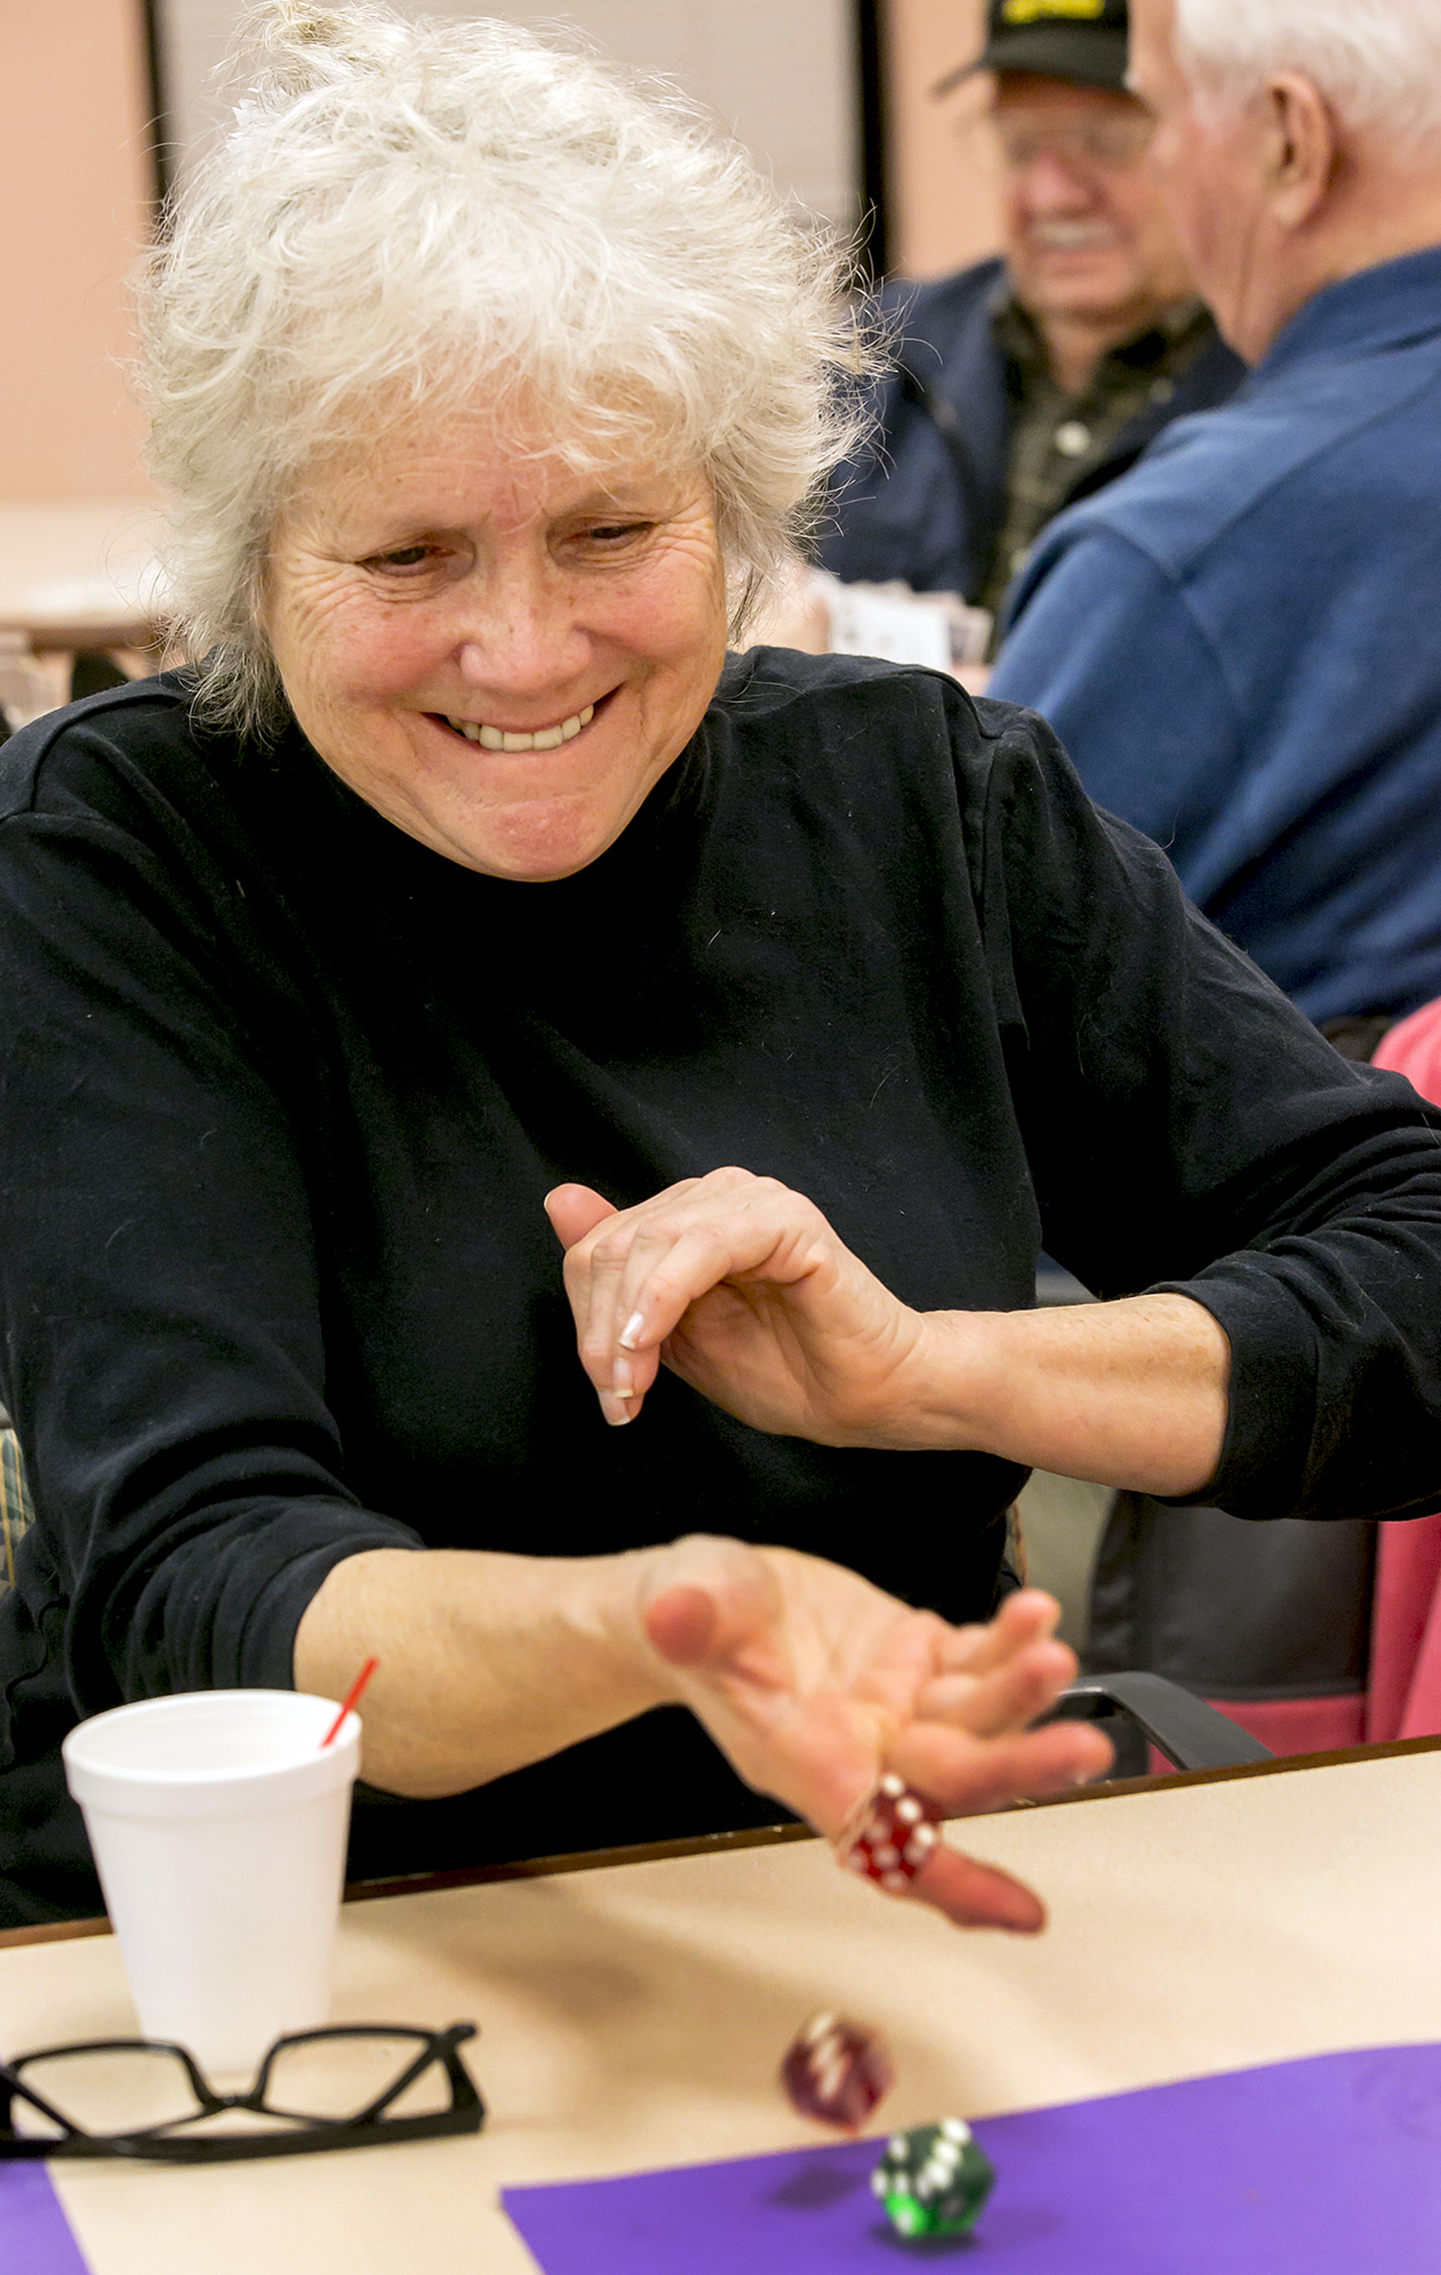 Photos of the February St. Clair St. Senior Center Dinner